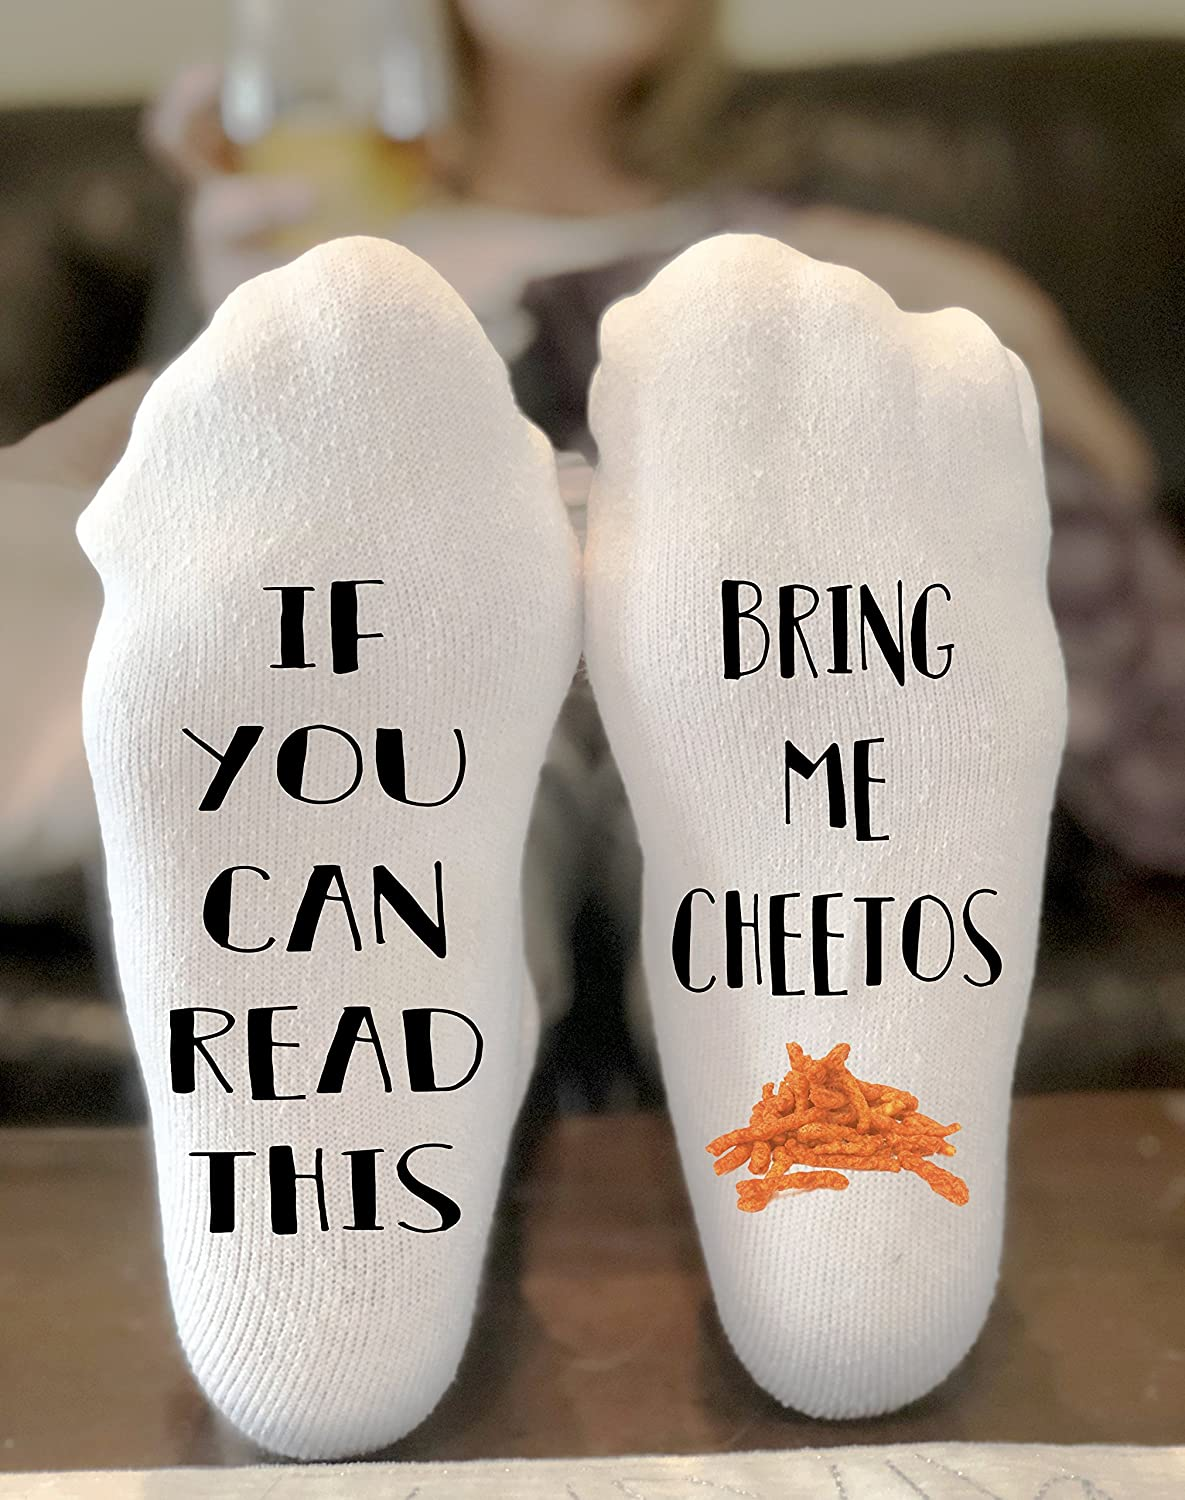 If You Can Read This Bring Me Cheetos Socks Novelty Funky Crew Socks Men Women Christmas Gifts Cotton Slipper Socks